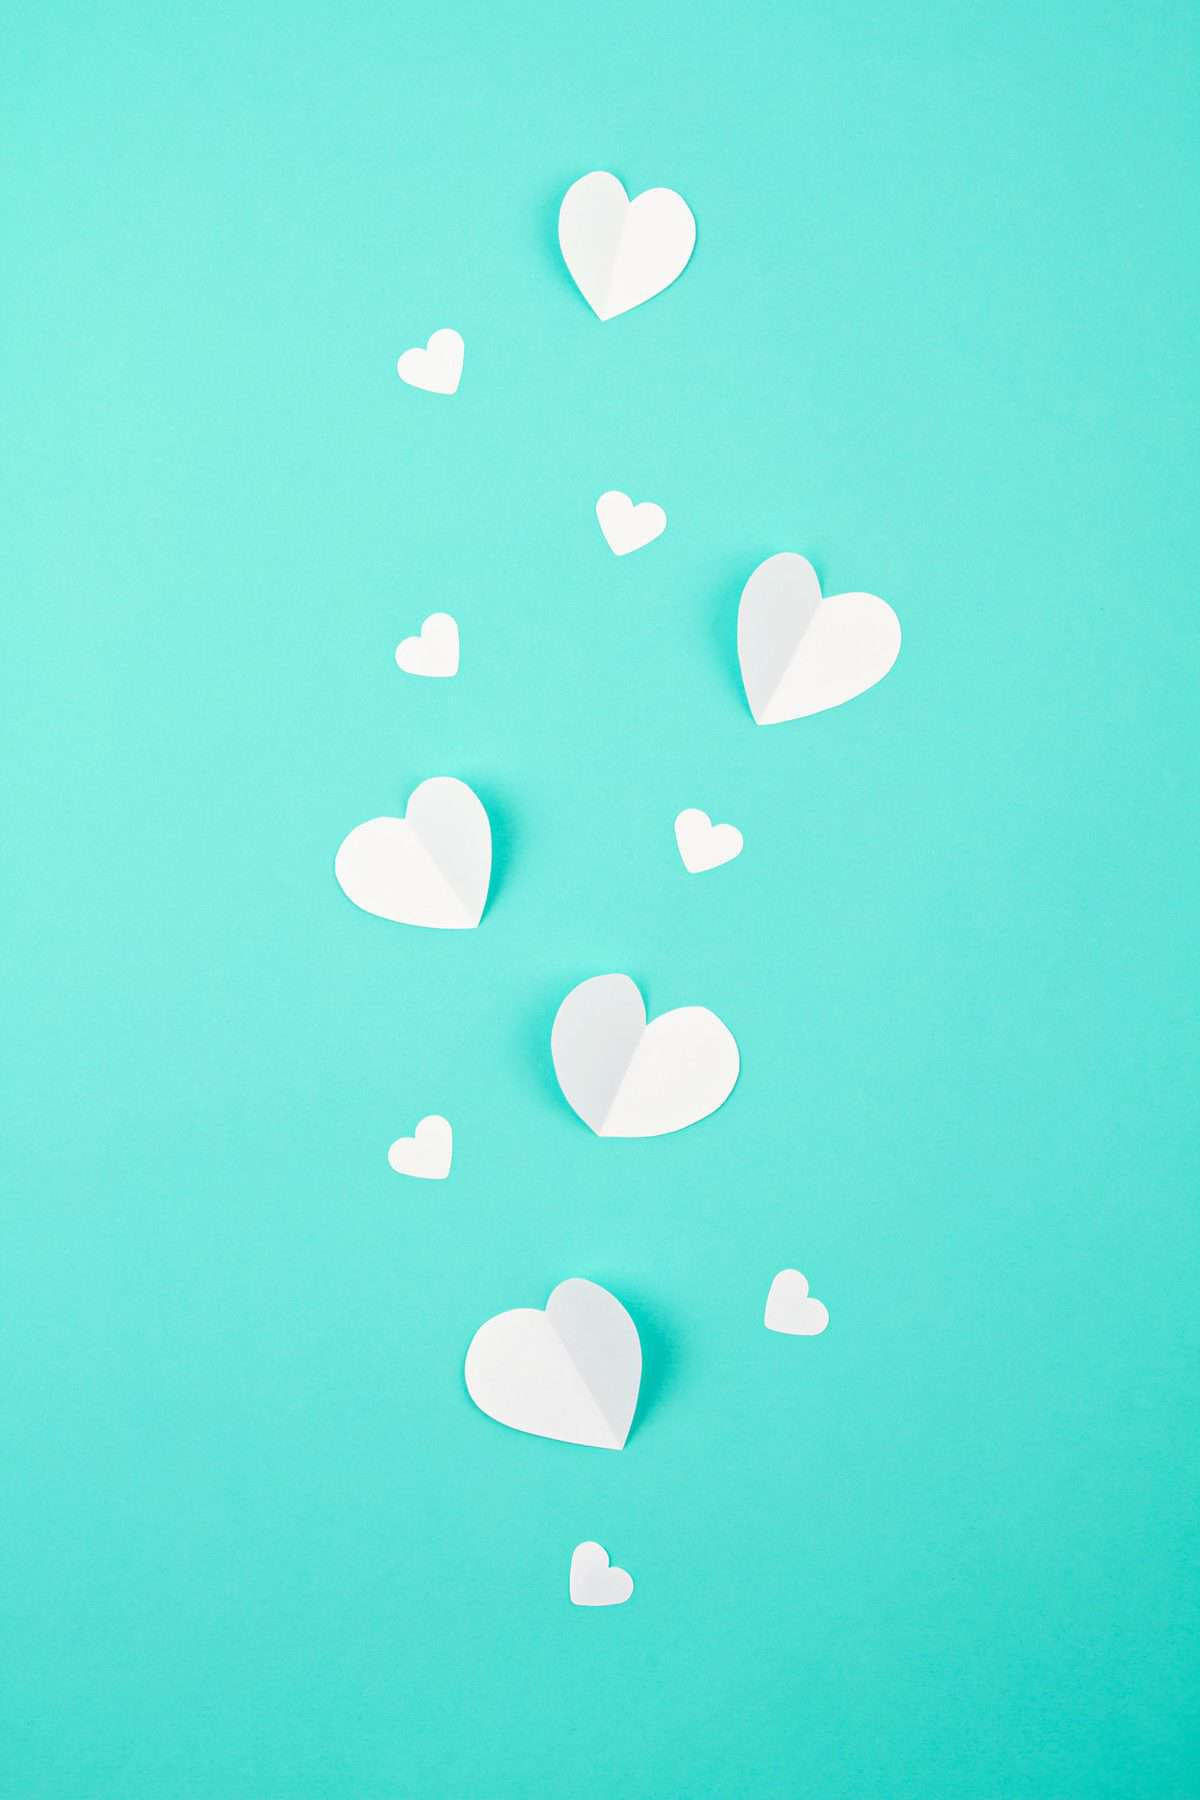 White paper cut out hearts sit on a teal background.